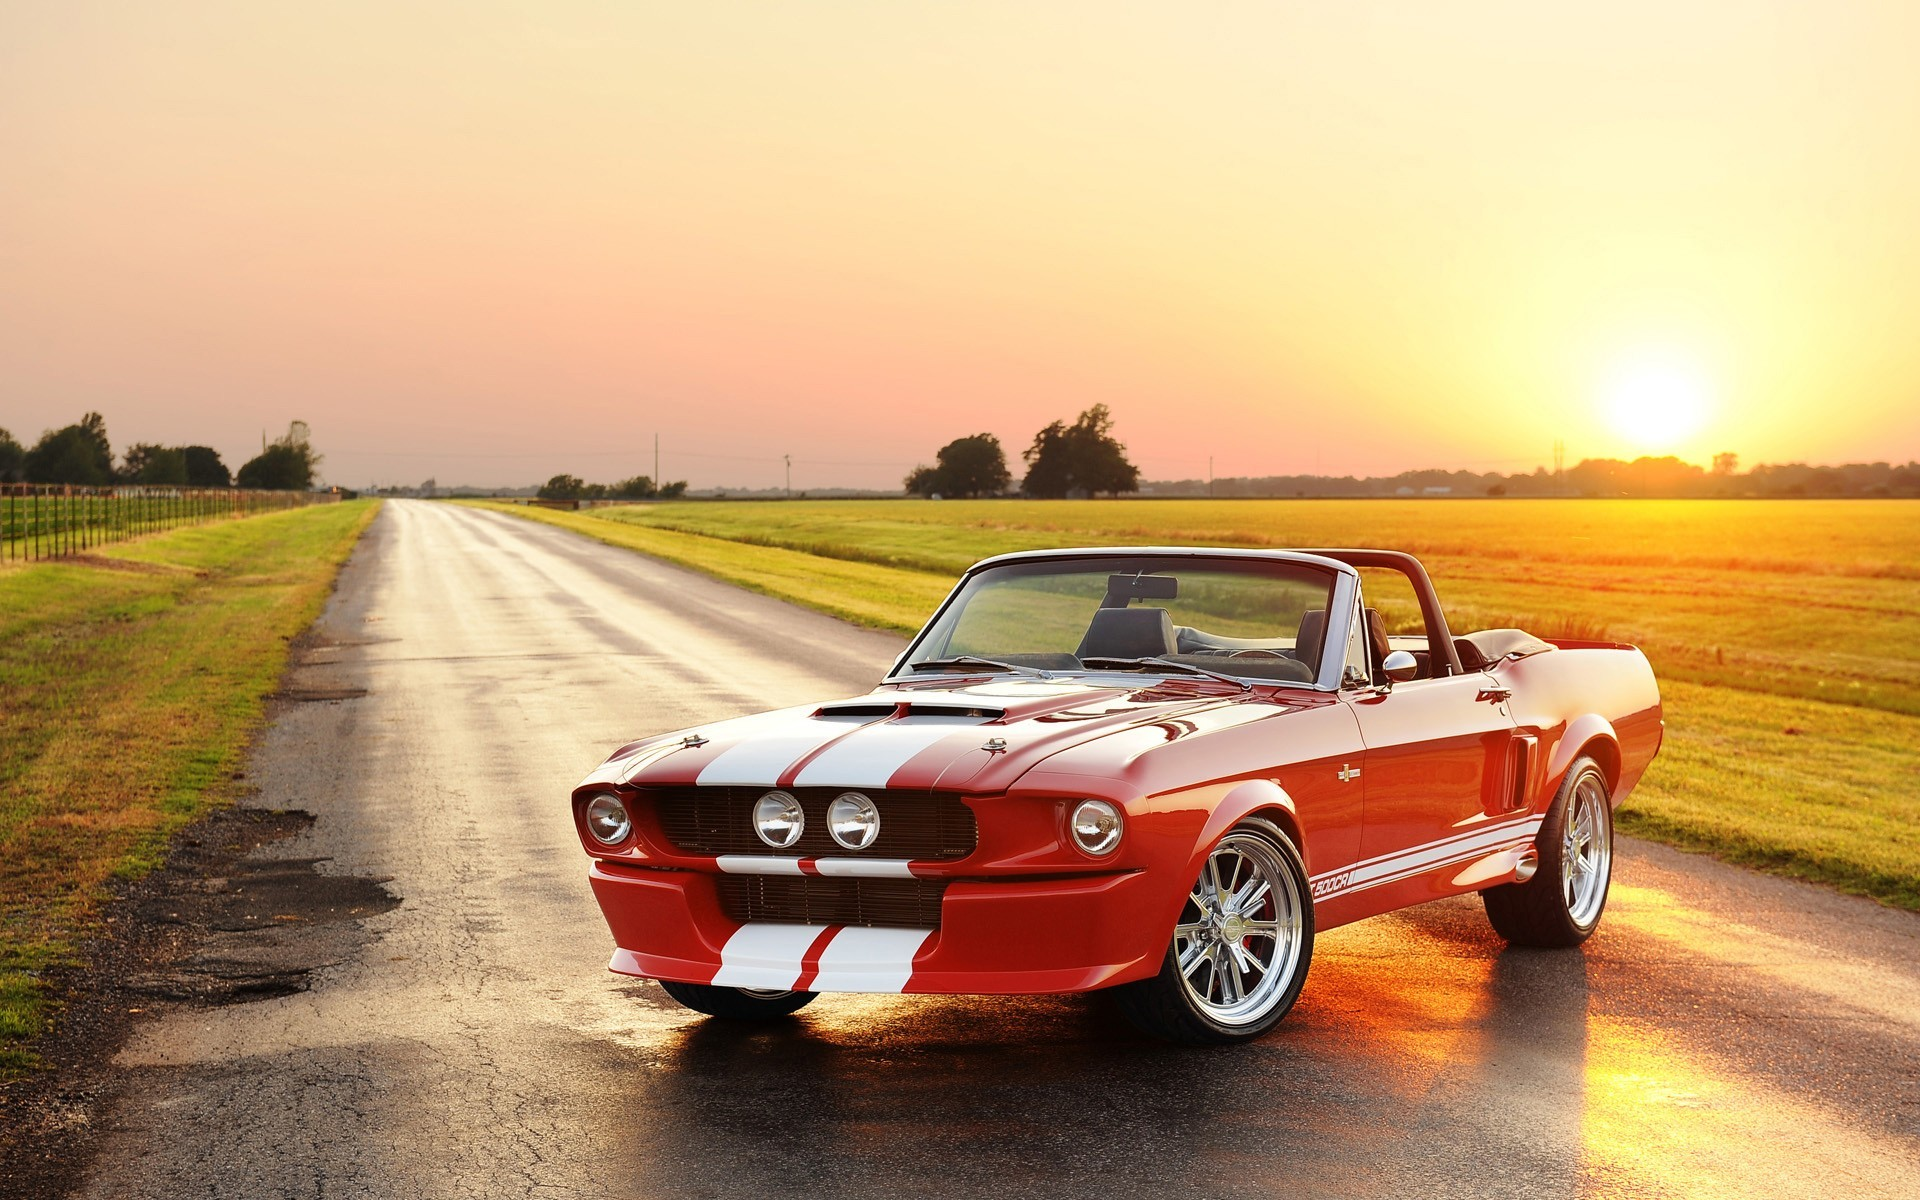 Res: 1920x1200, Classic Car Wallpapers For Iphone